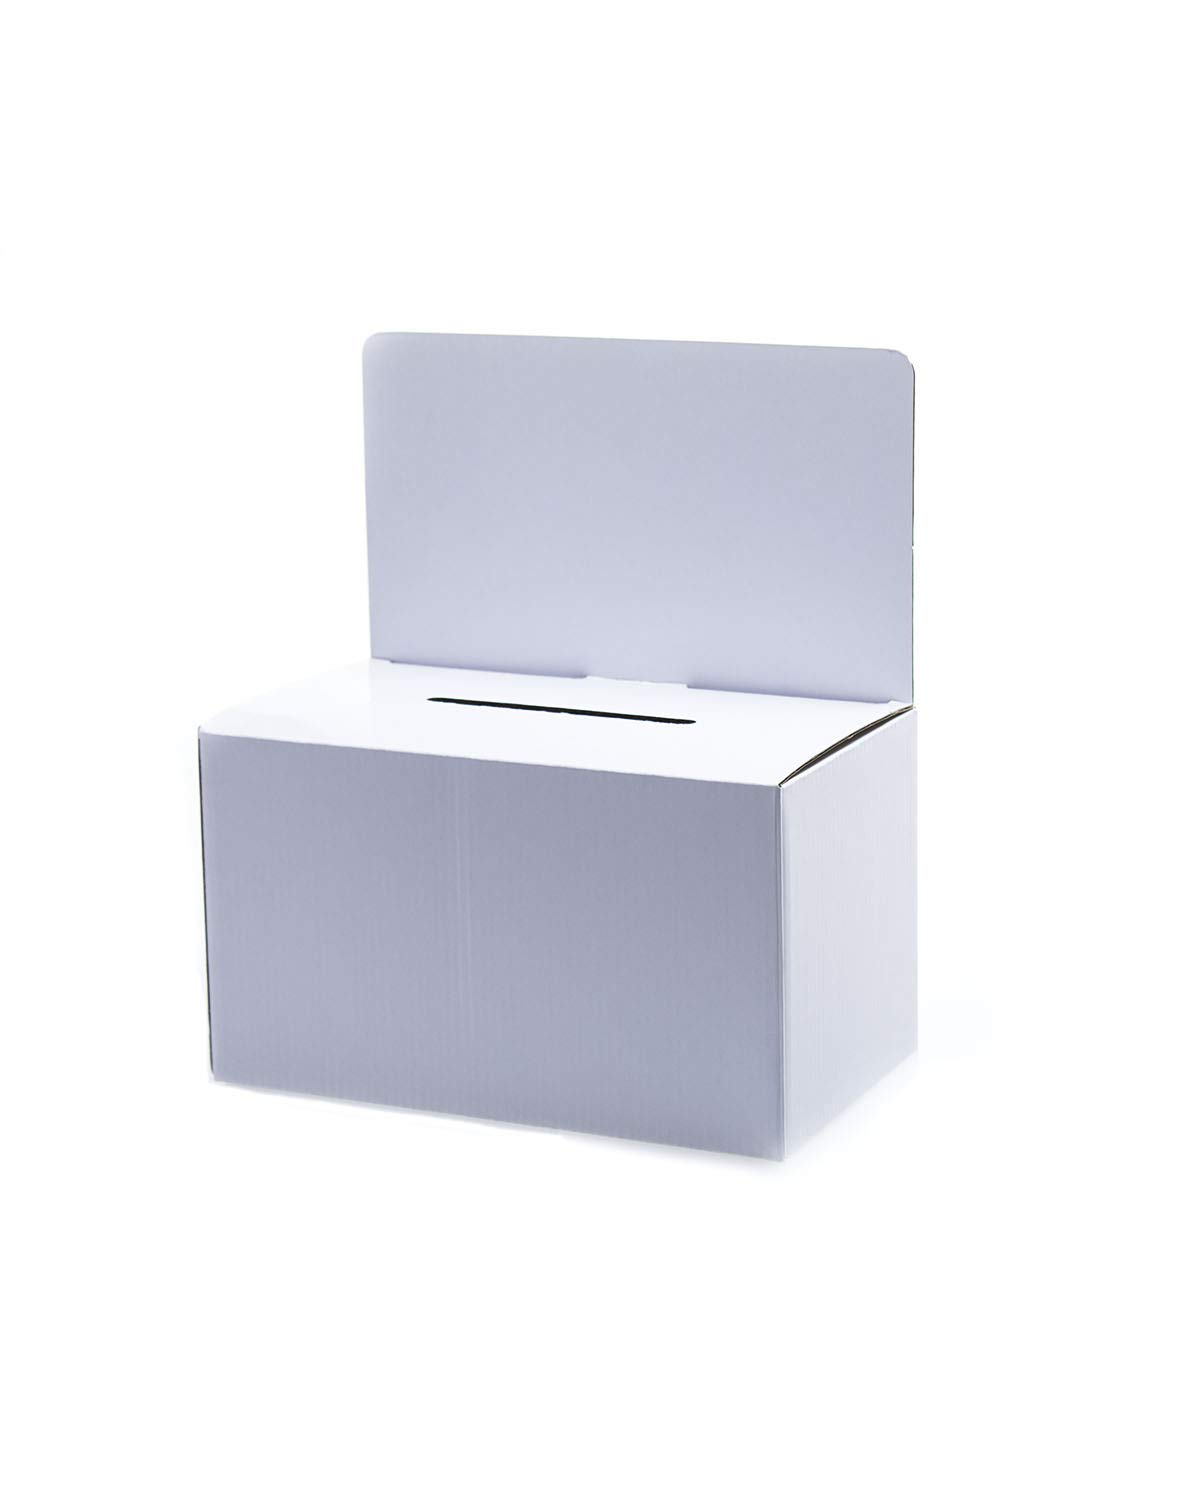 Source One Deluxe Cardboard Donation Box, Pack of 10, Lightweight & Customizable (Medium, White) by SOURCEONE.ORG